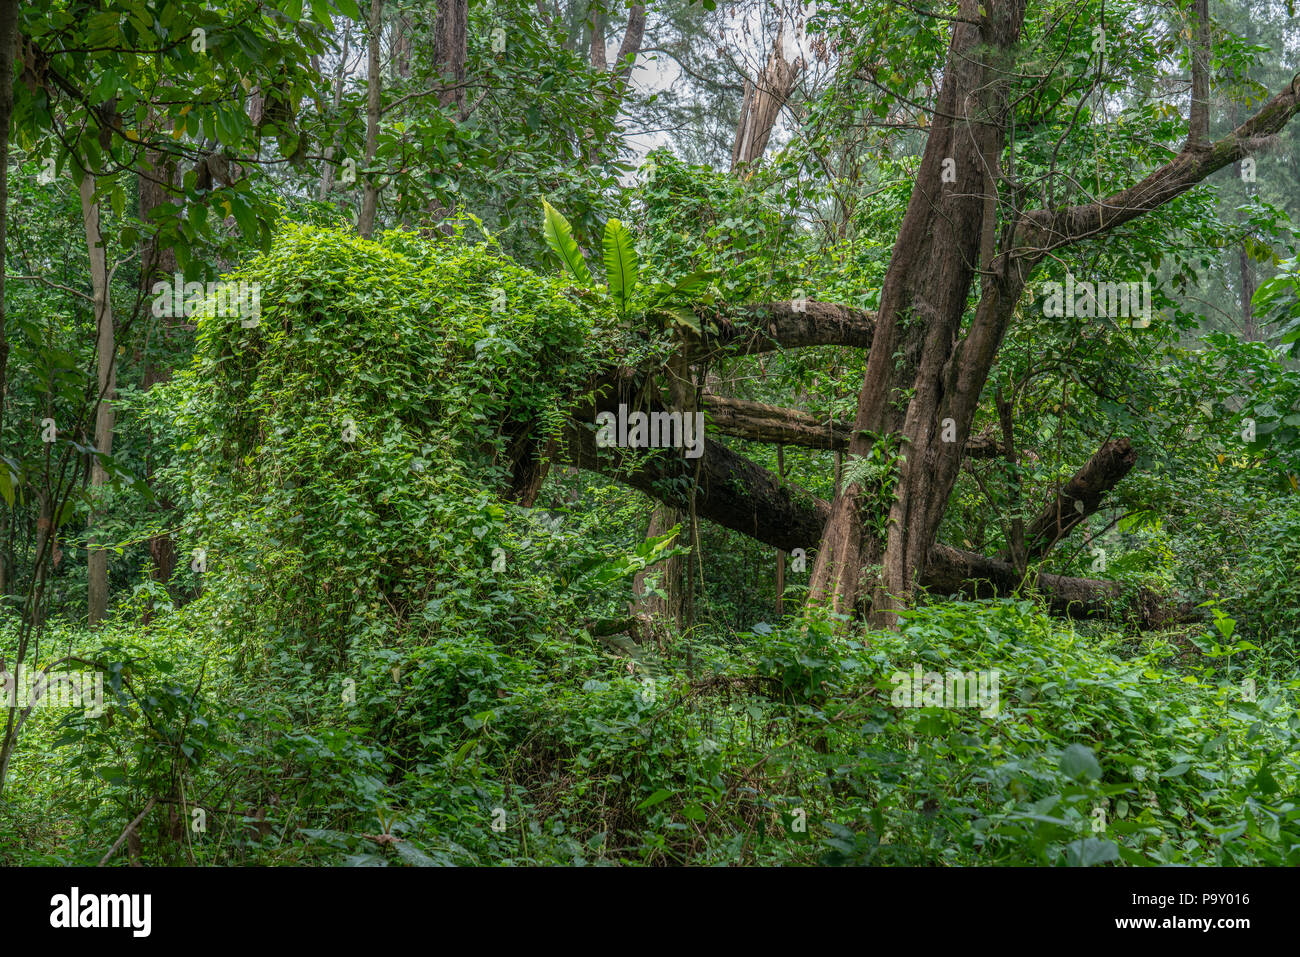 Singapore - july 15, 2018:  Dense Forrest. Coney Island, alternatively known as Pulau Serangoon, is a 133-hectare island located off the northeastern  - Stock Image